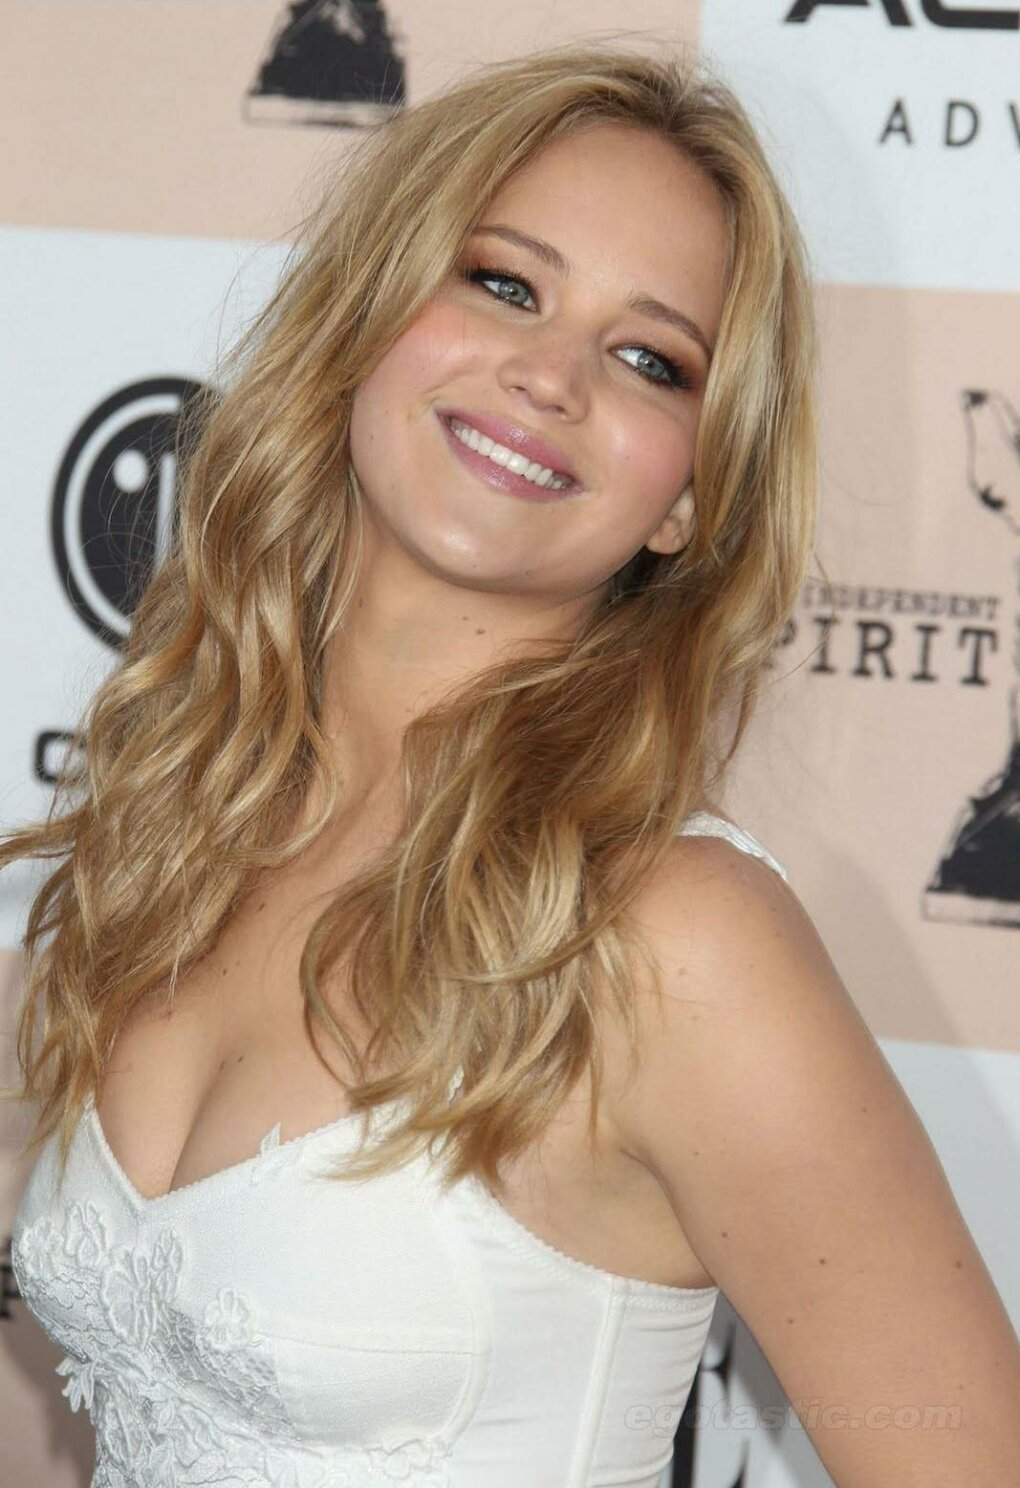 hownp0y - jennifer lawrence is sexy (54 photos)